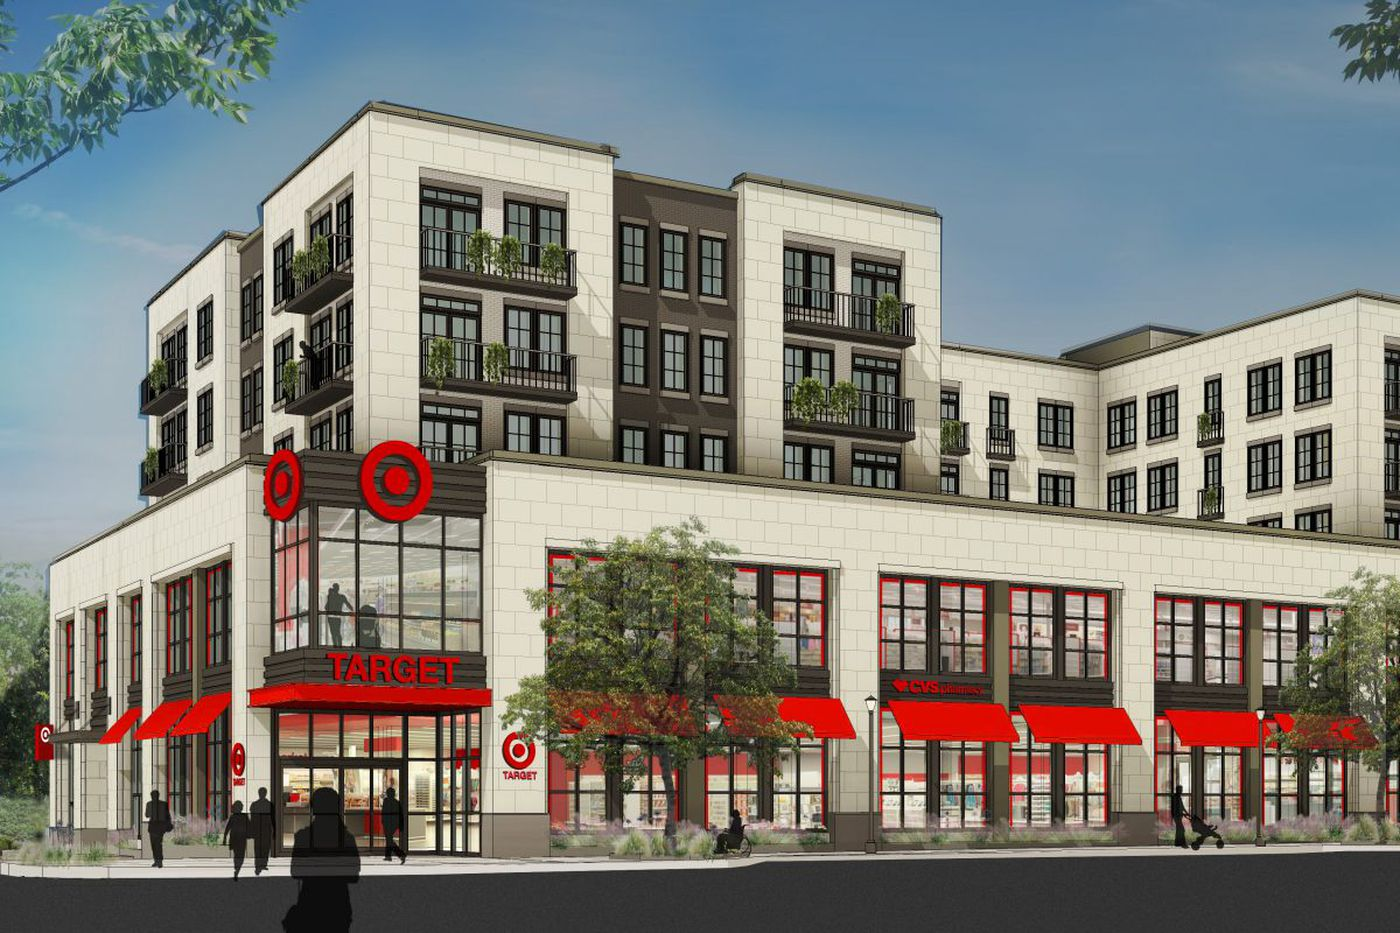 Target to open small store in planned Ardmore apartment complex